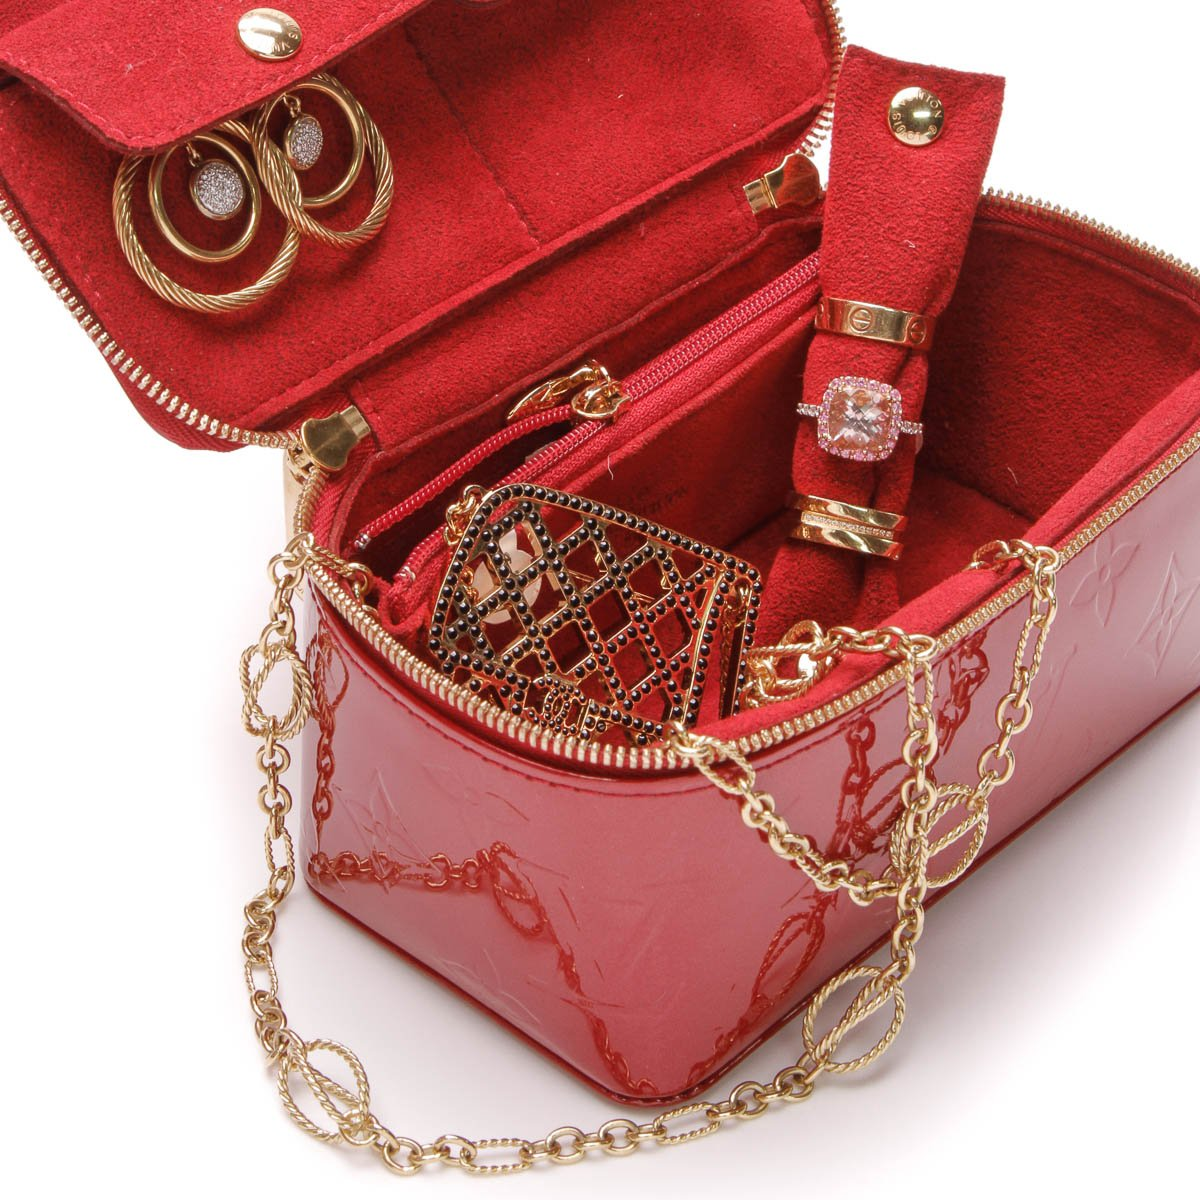 http   ow.ly UJDz30nYITU  CoutureUSA  jewelry  necklace  ring  brooch   earring  LouisVuitton  Chanel  Cartier  tampa  designer  luxury ... c716004d61615